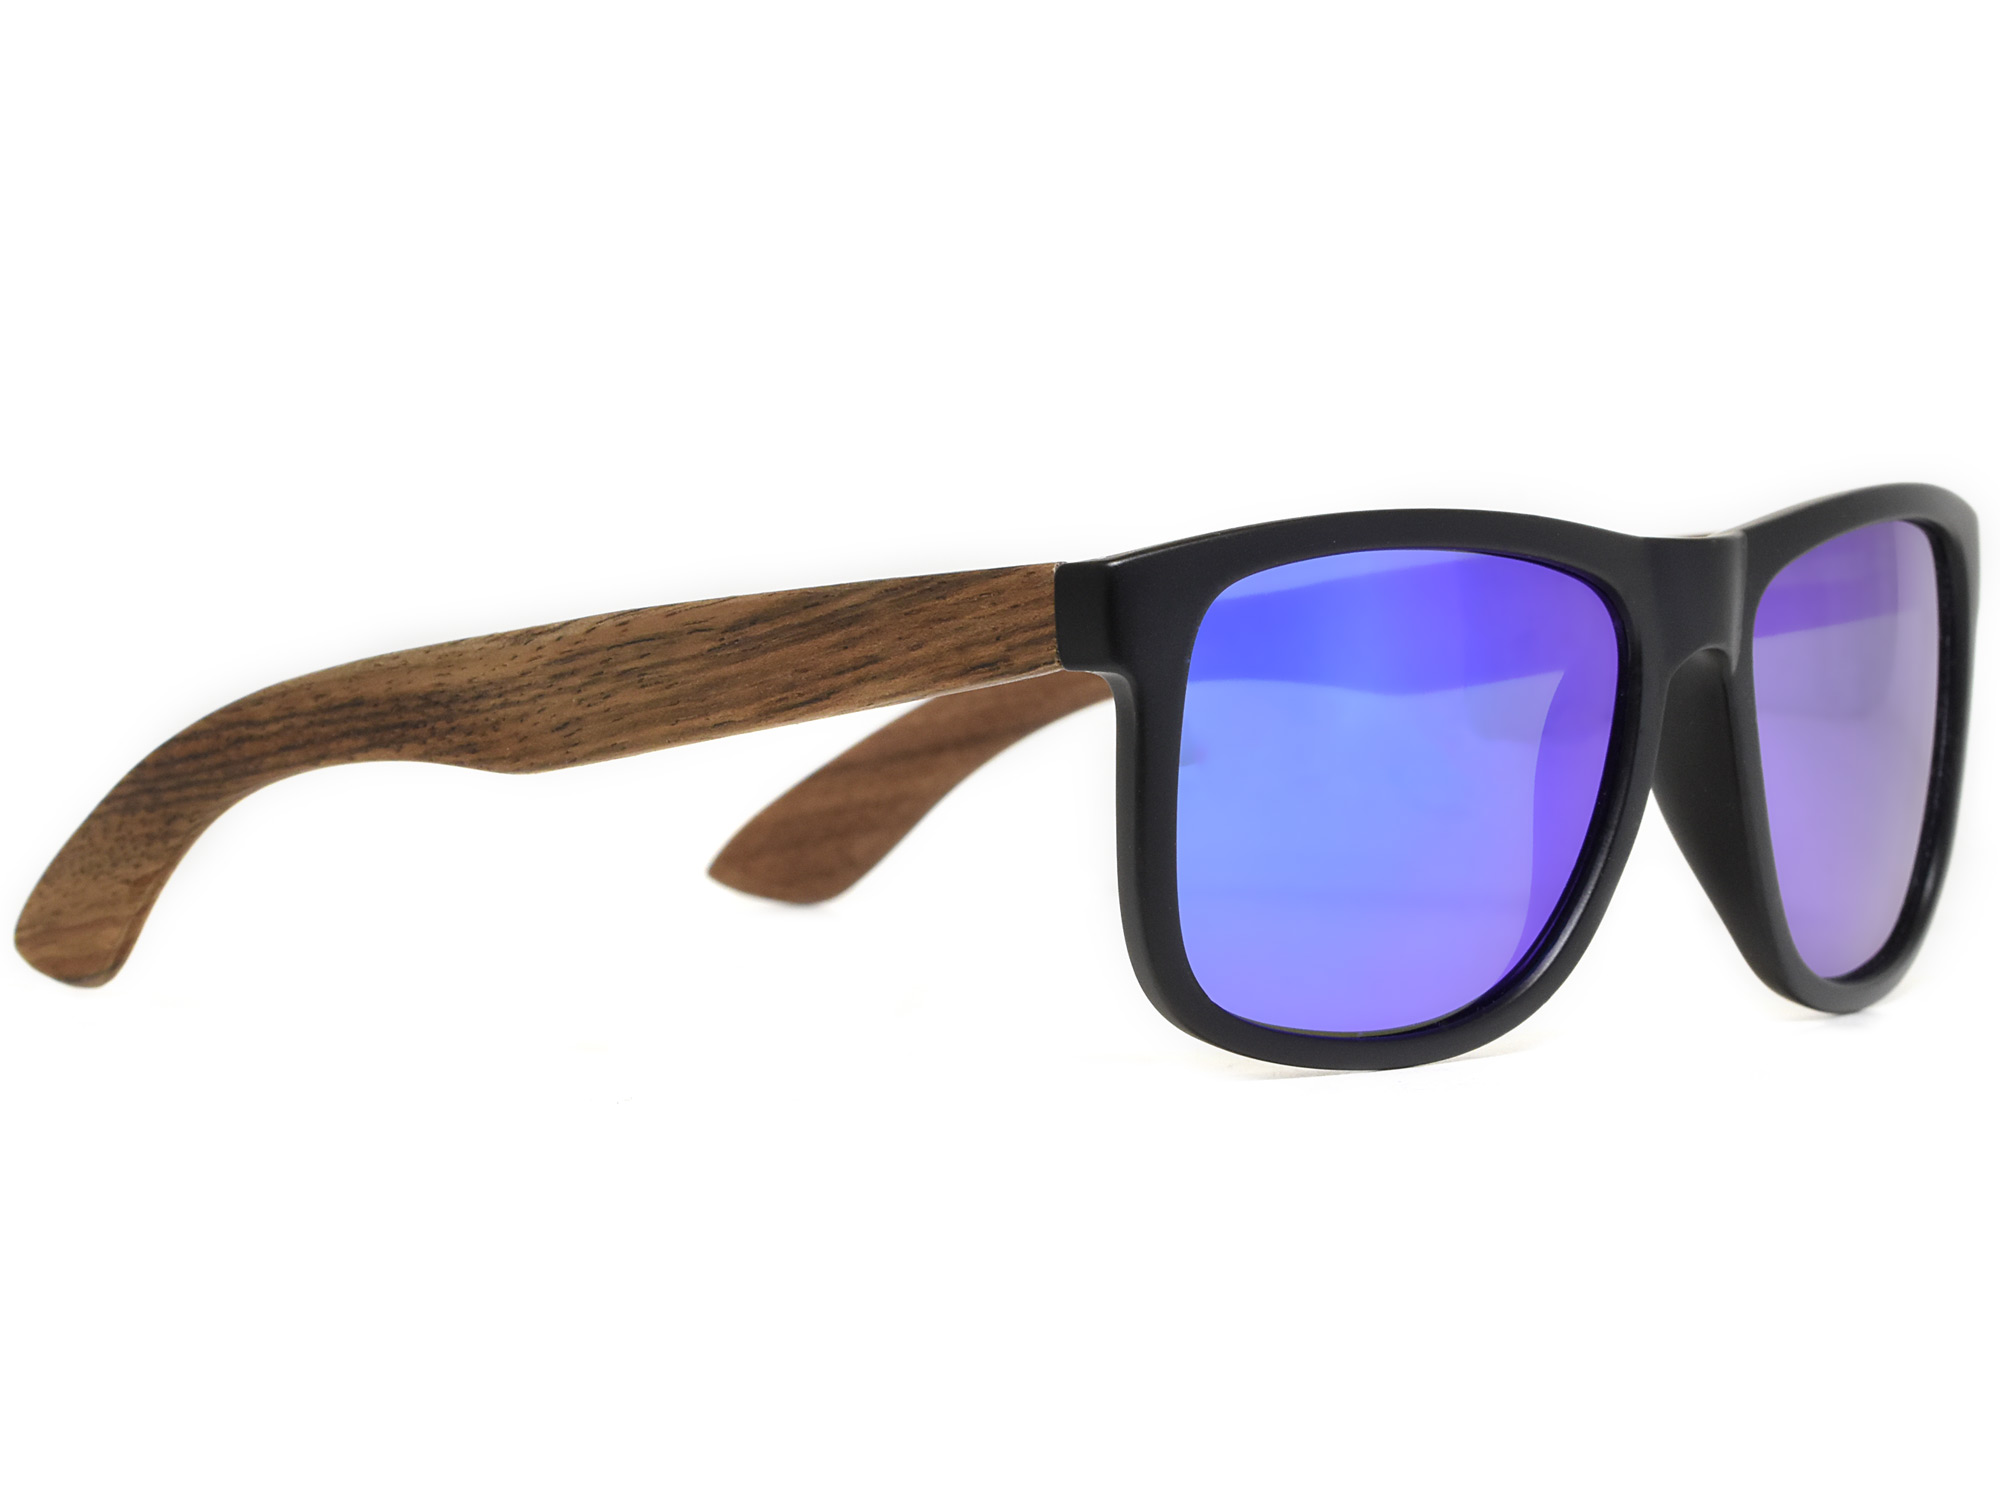 Square walnut wood sunglasses with blue mirrored polarized lenses right